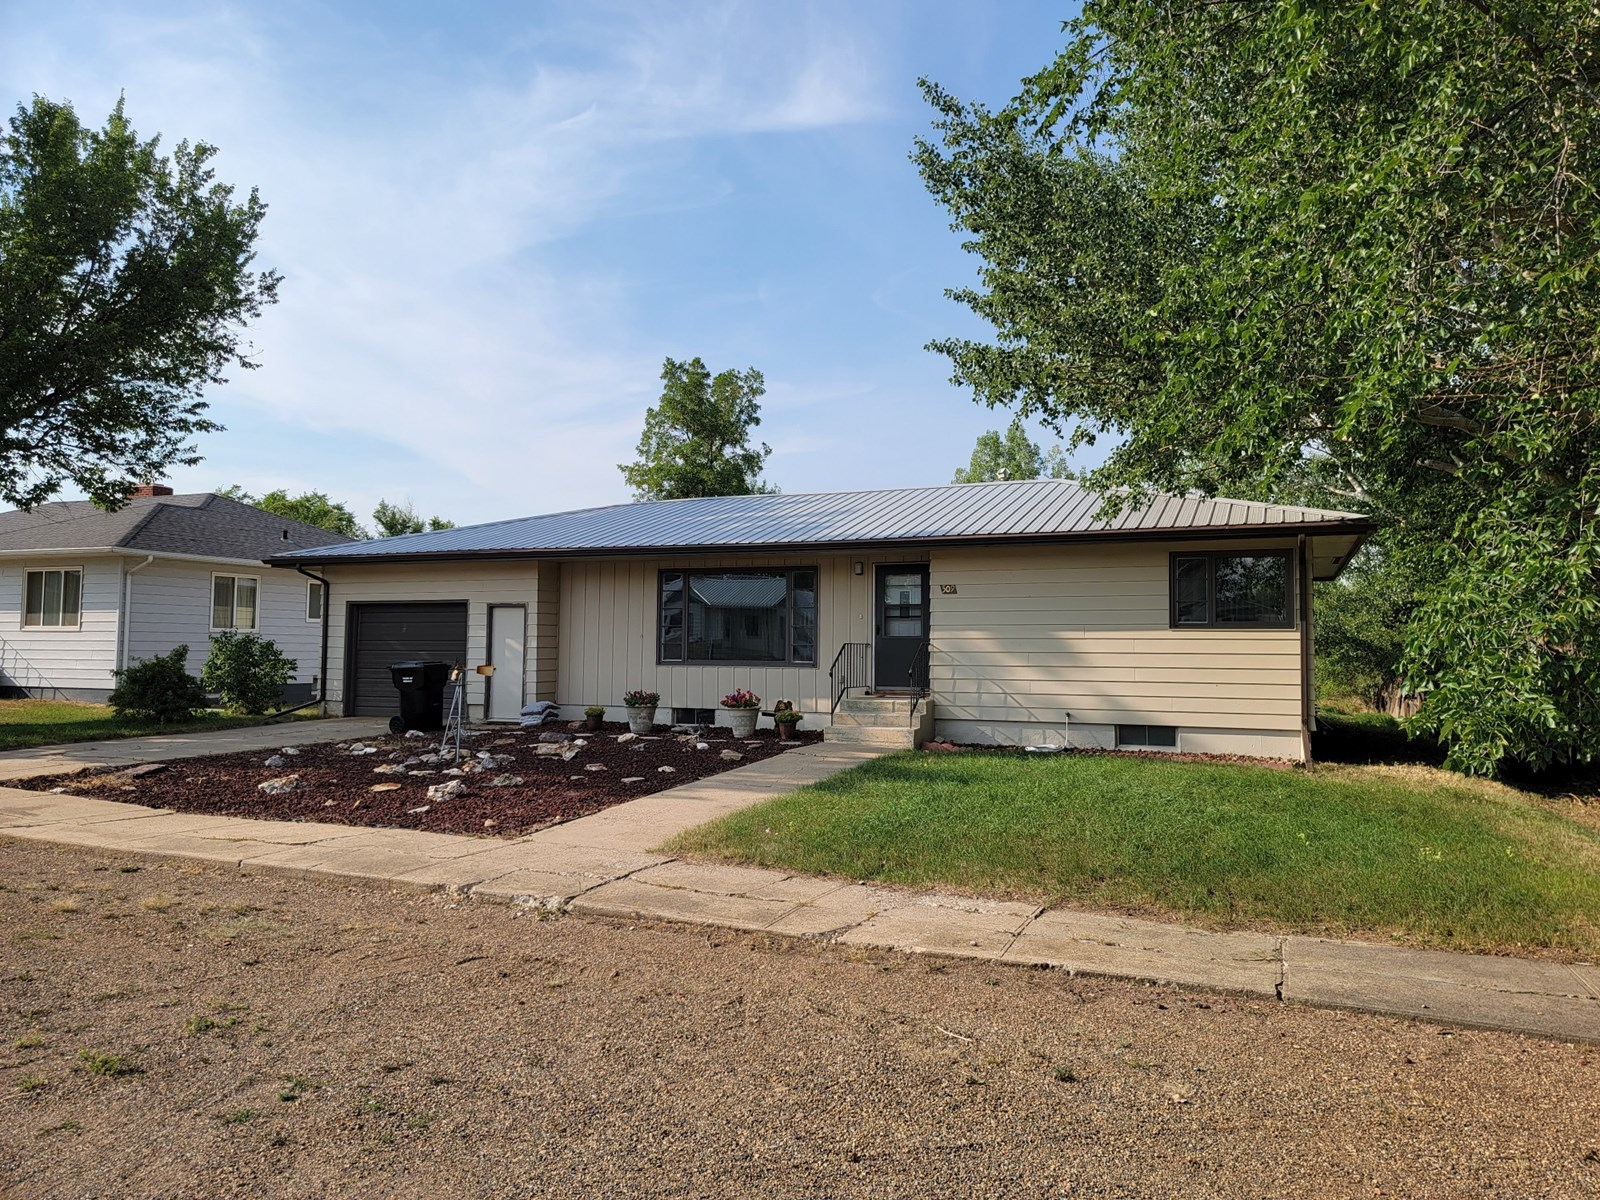 Home for Sale in Wibaux, Montana